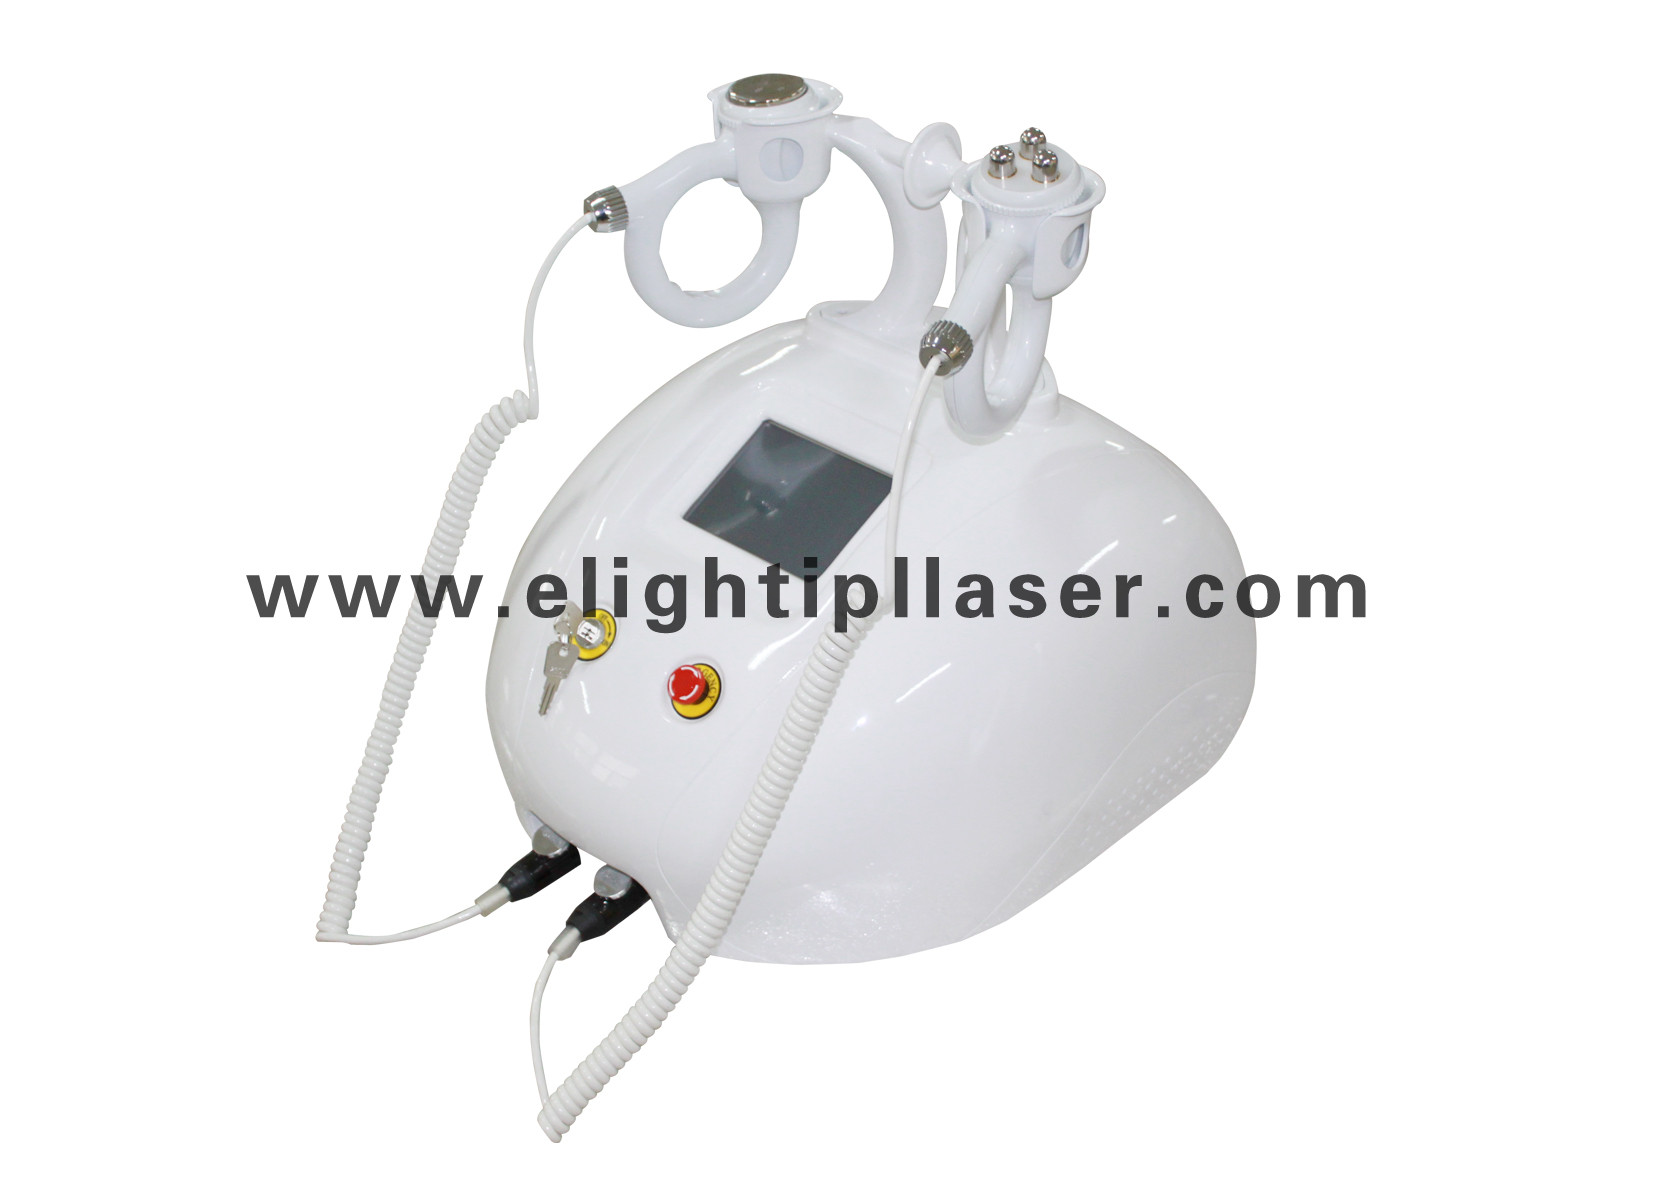 Full Body RF Vacuum Cavitation Slimming Machine To Remove Surplus Fat , Home Use